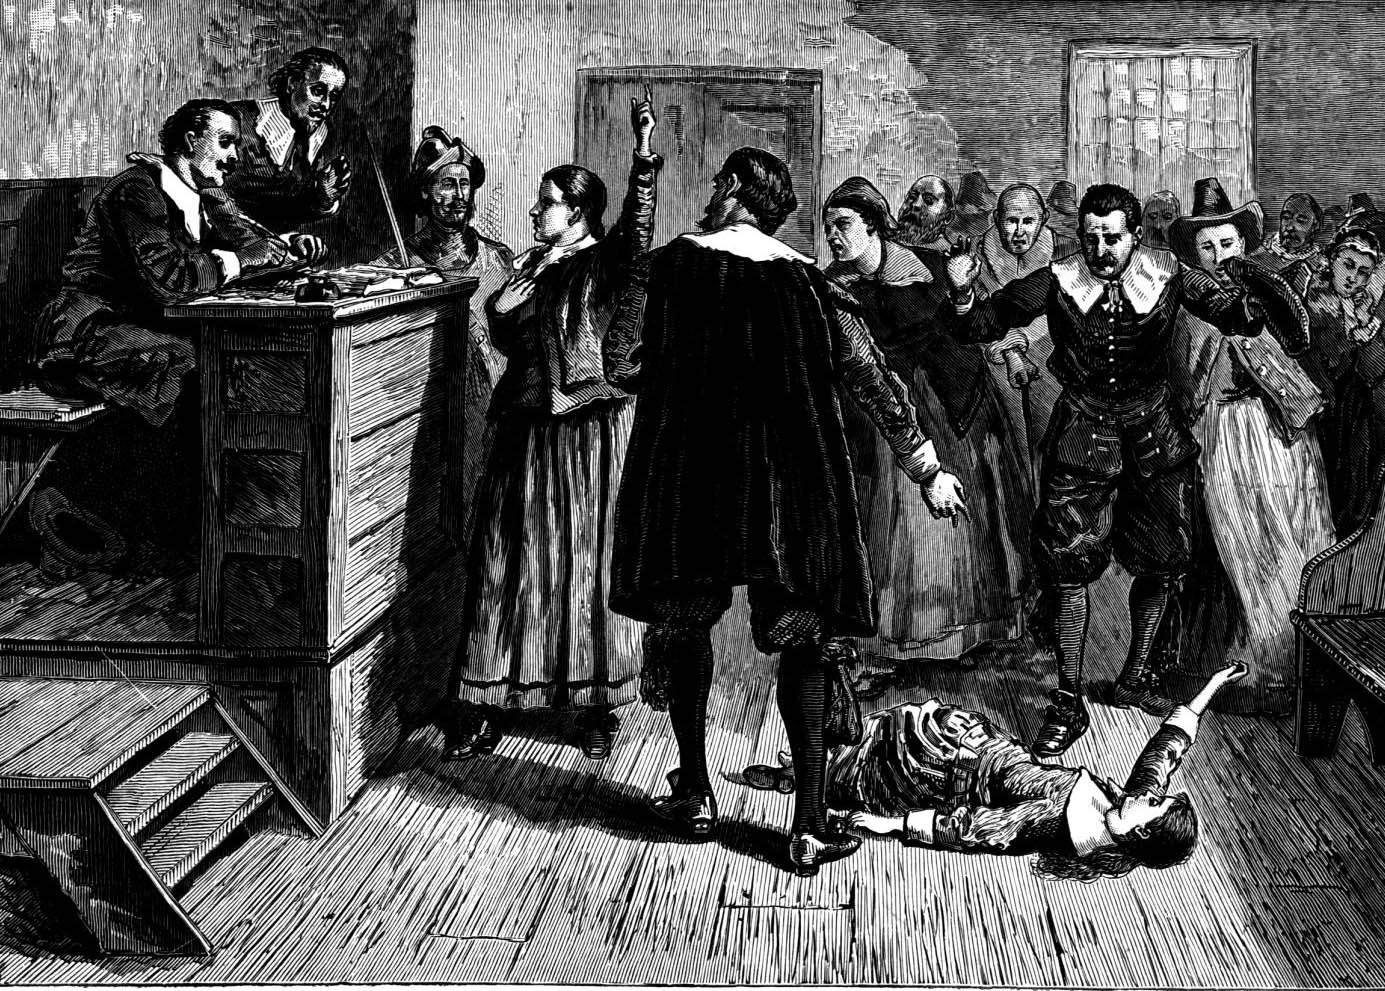 brief analysis on salem witch trials A brief history of the salem witchcraft trials in preparation for wgn's original series 'salem.